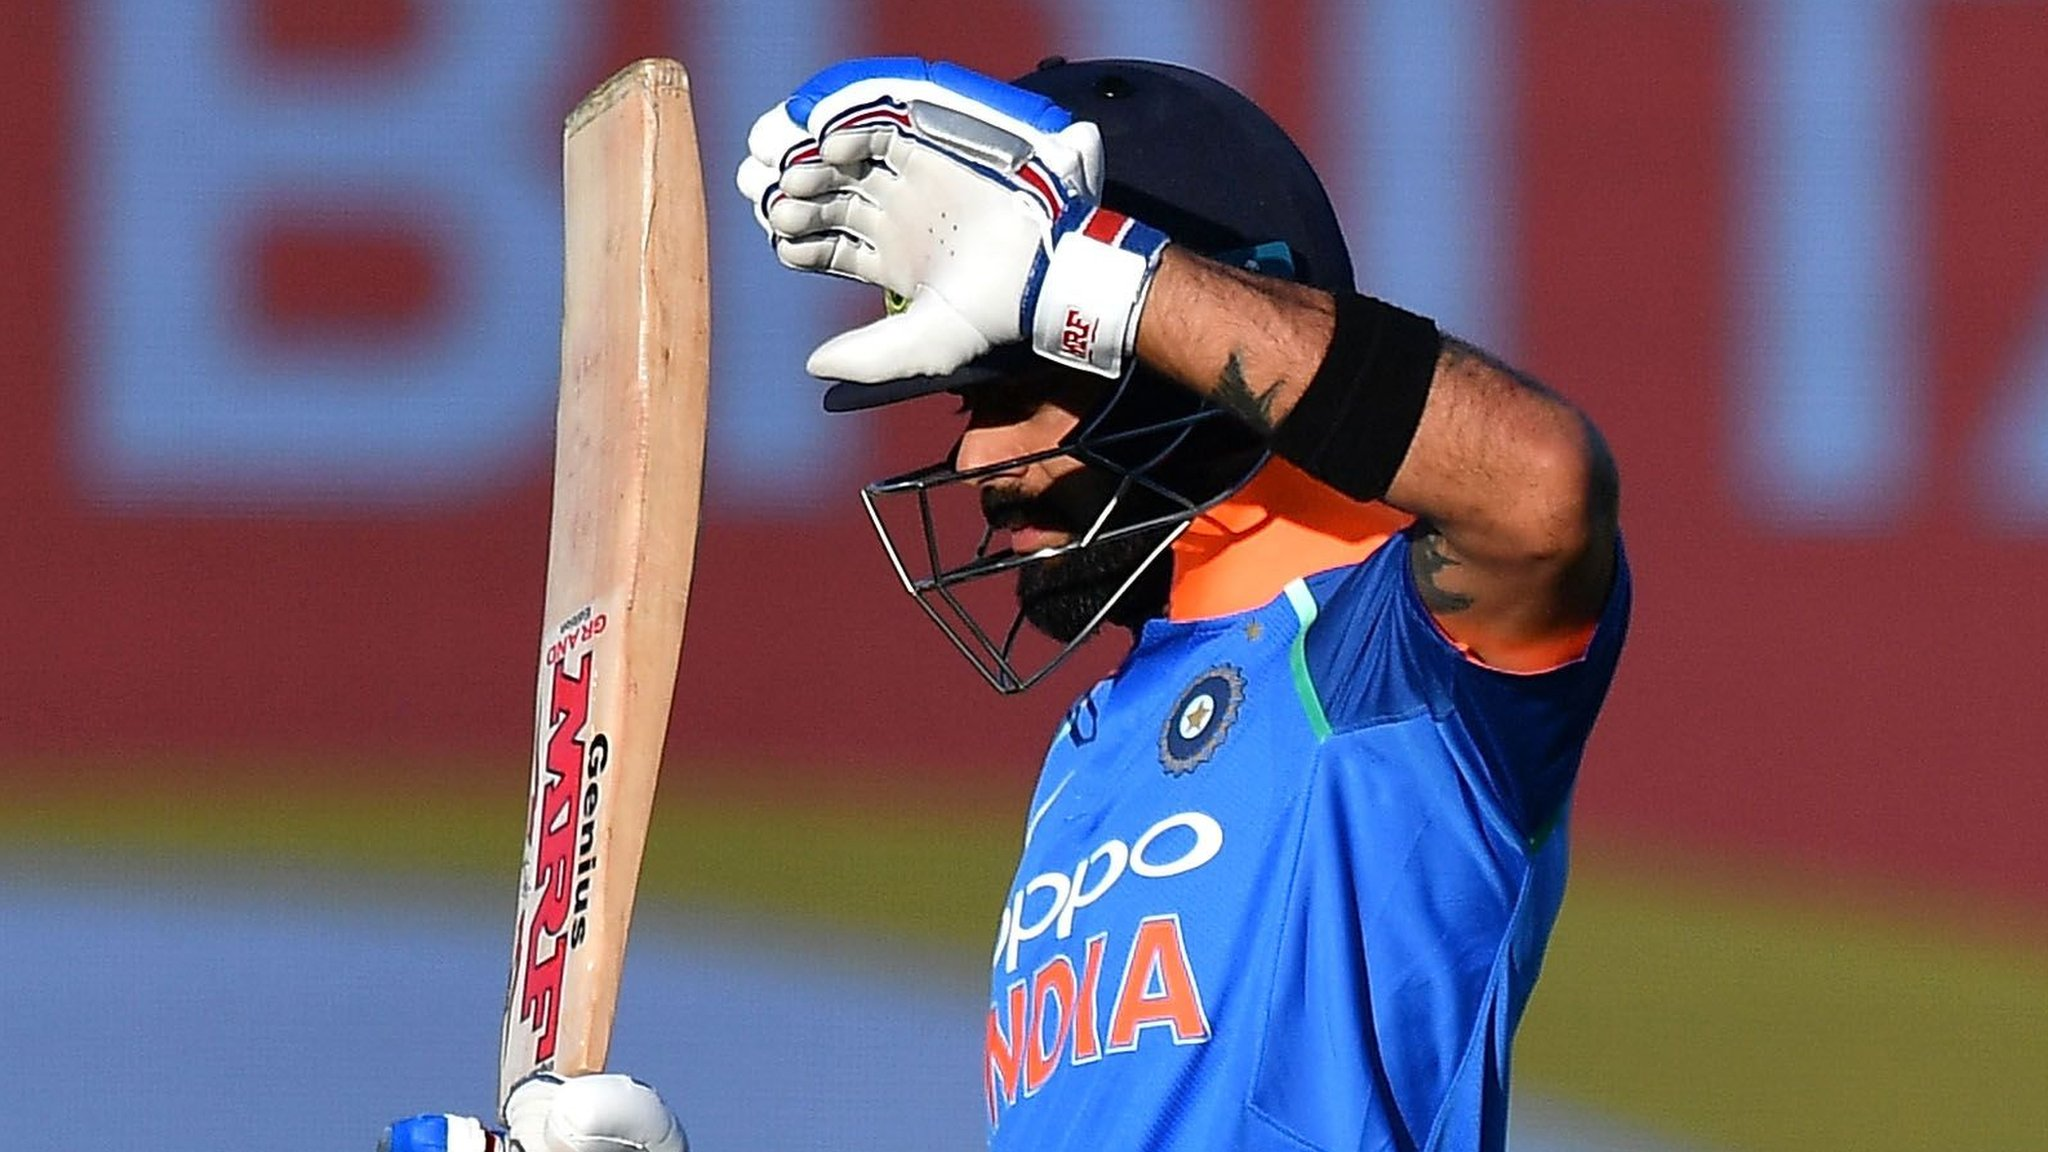 Sun stops play as India beat New Zealand in ODI